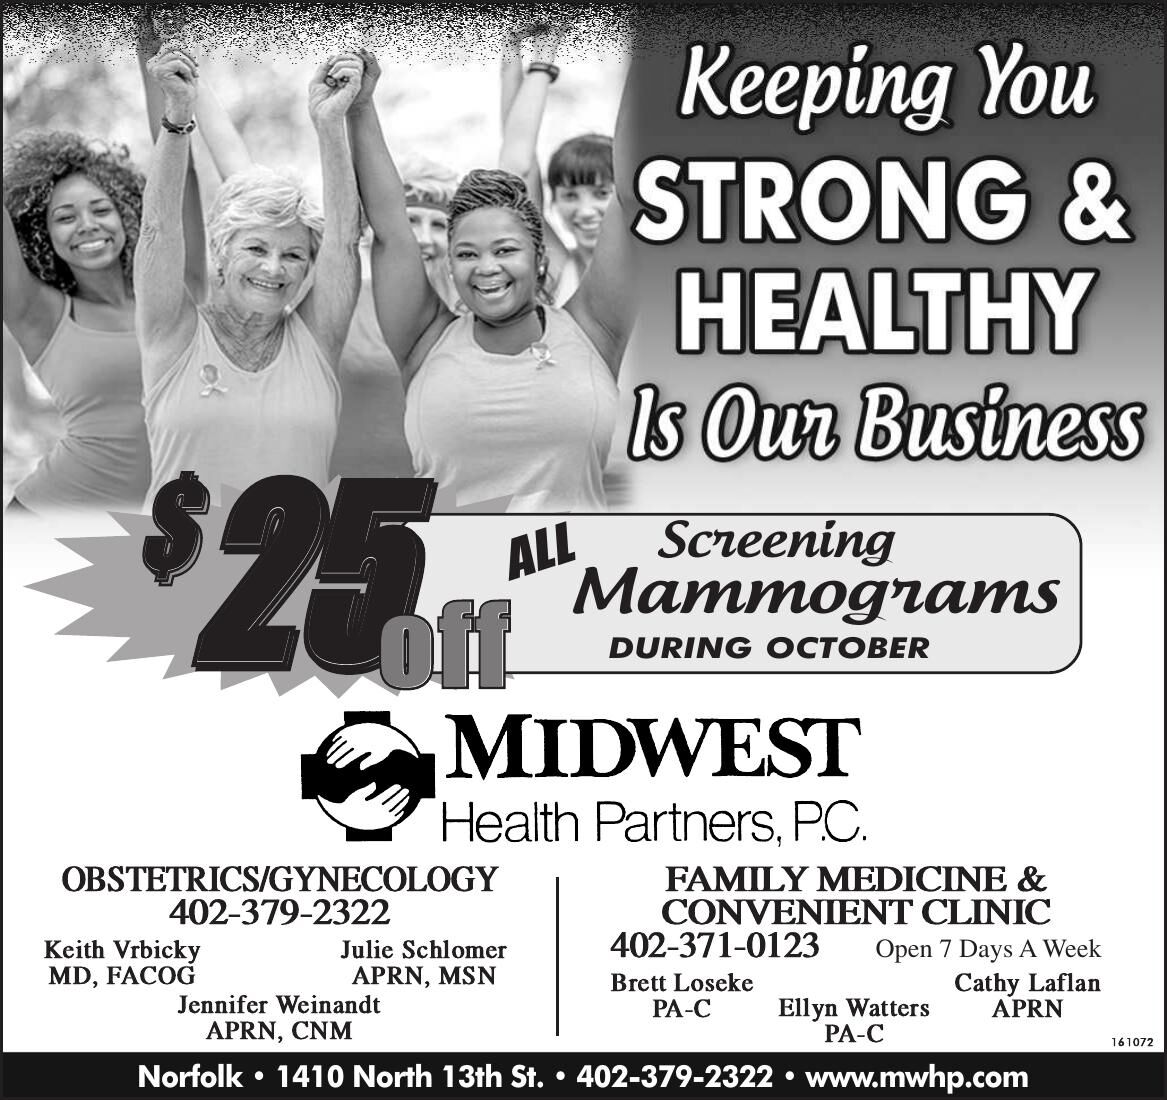 Midwest Health Partners